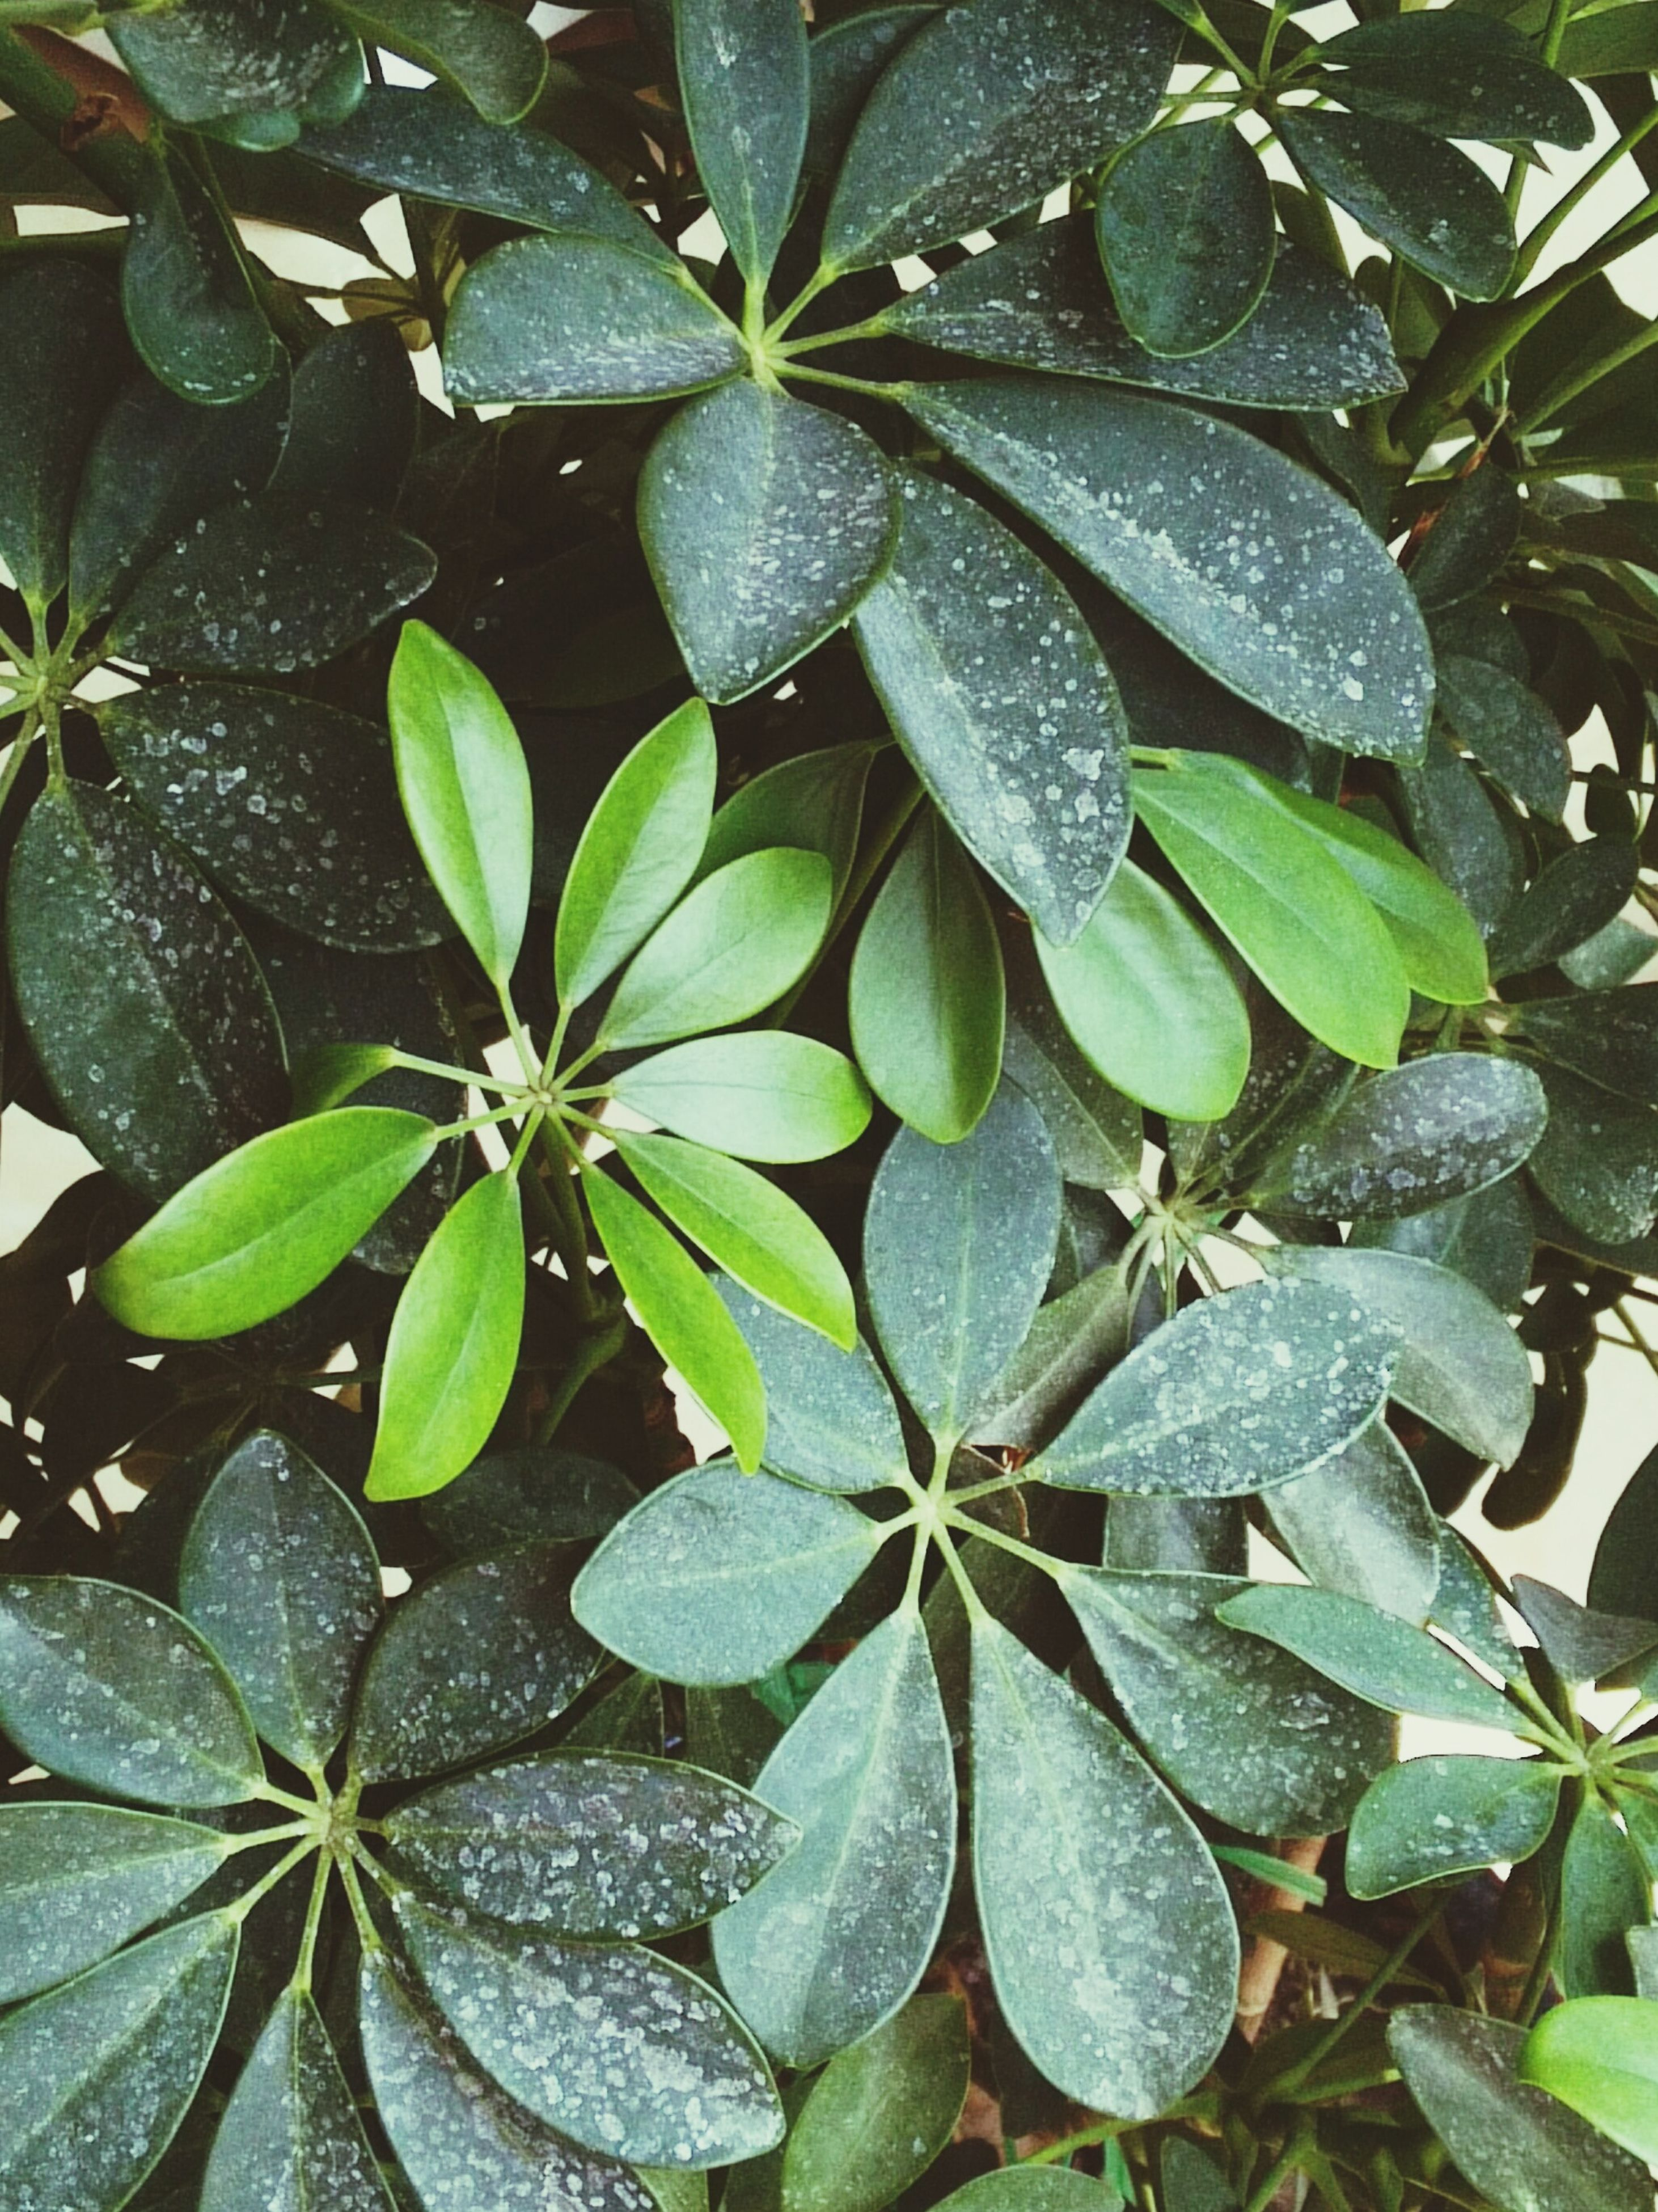 leaf, drop, plant, nature, growth, green color, close-up, day, wet, water, beauty in nature, fragility, freshness, outdoors, raindrop, no people, periwinkle